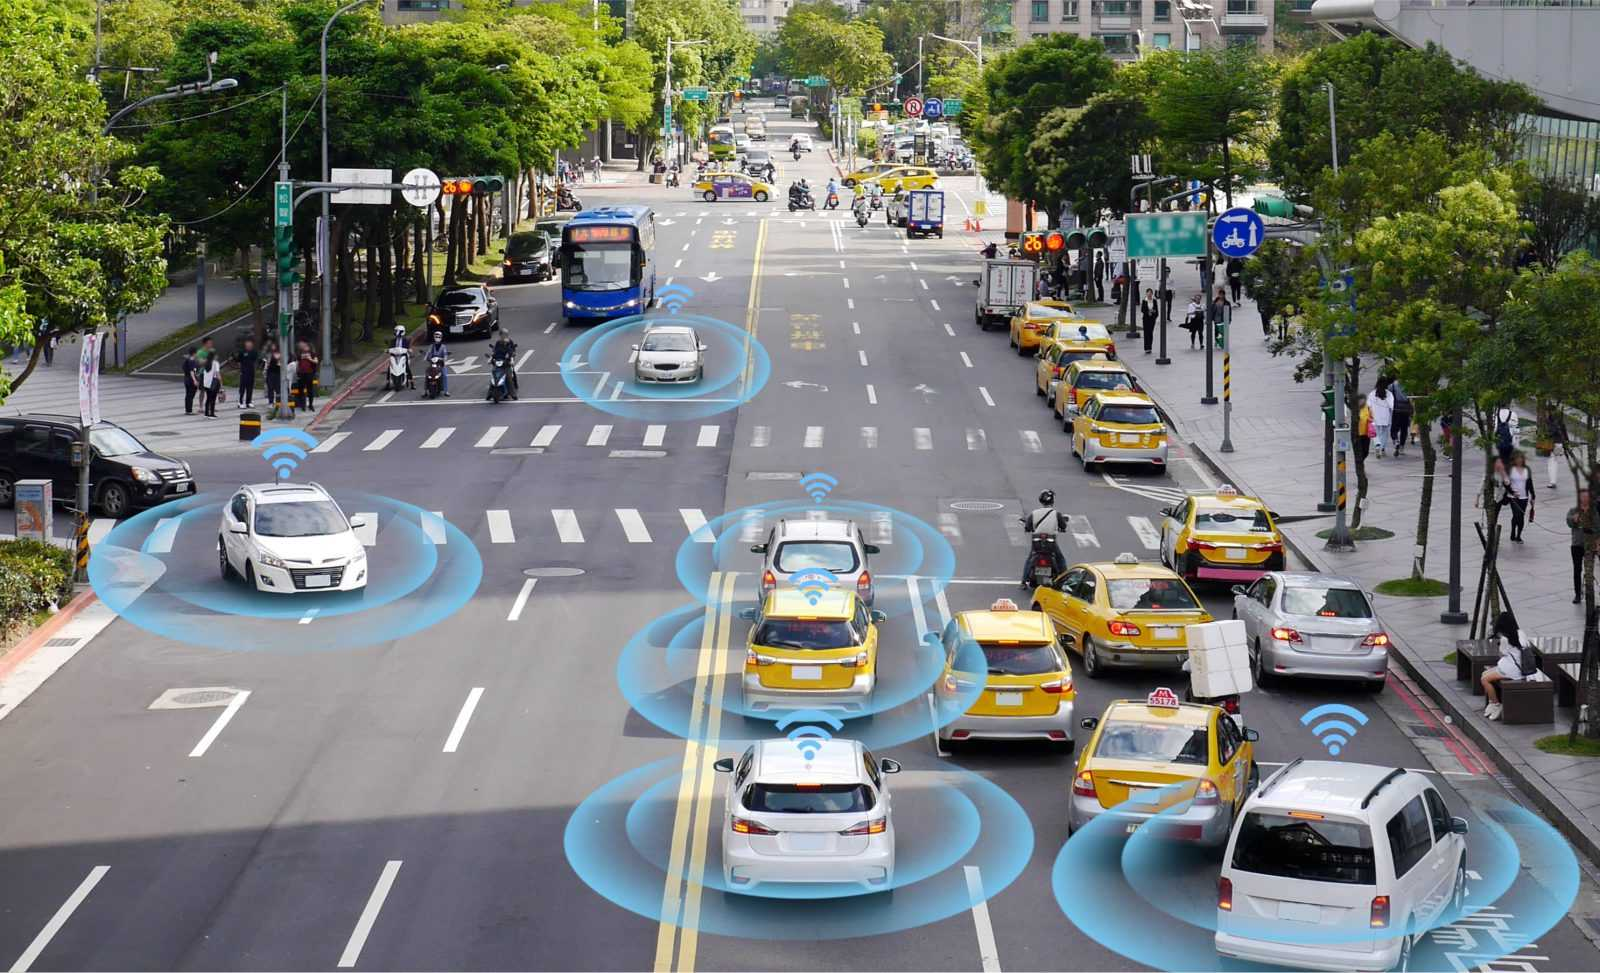 The vehicle first brings the mapping technology in use in these cars